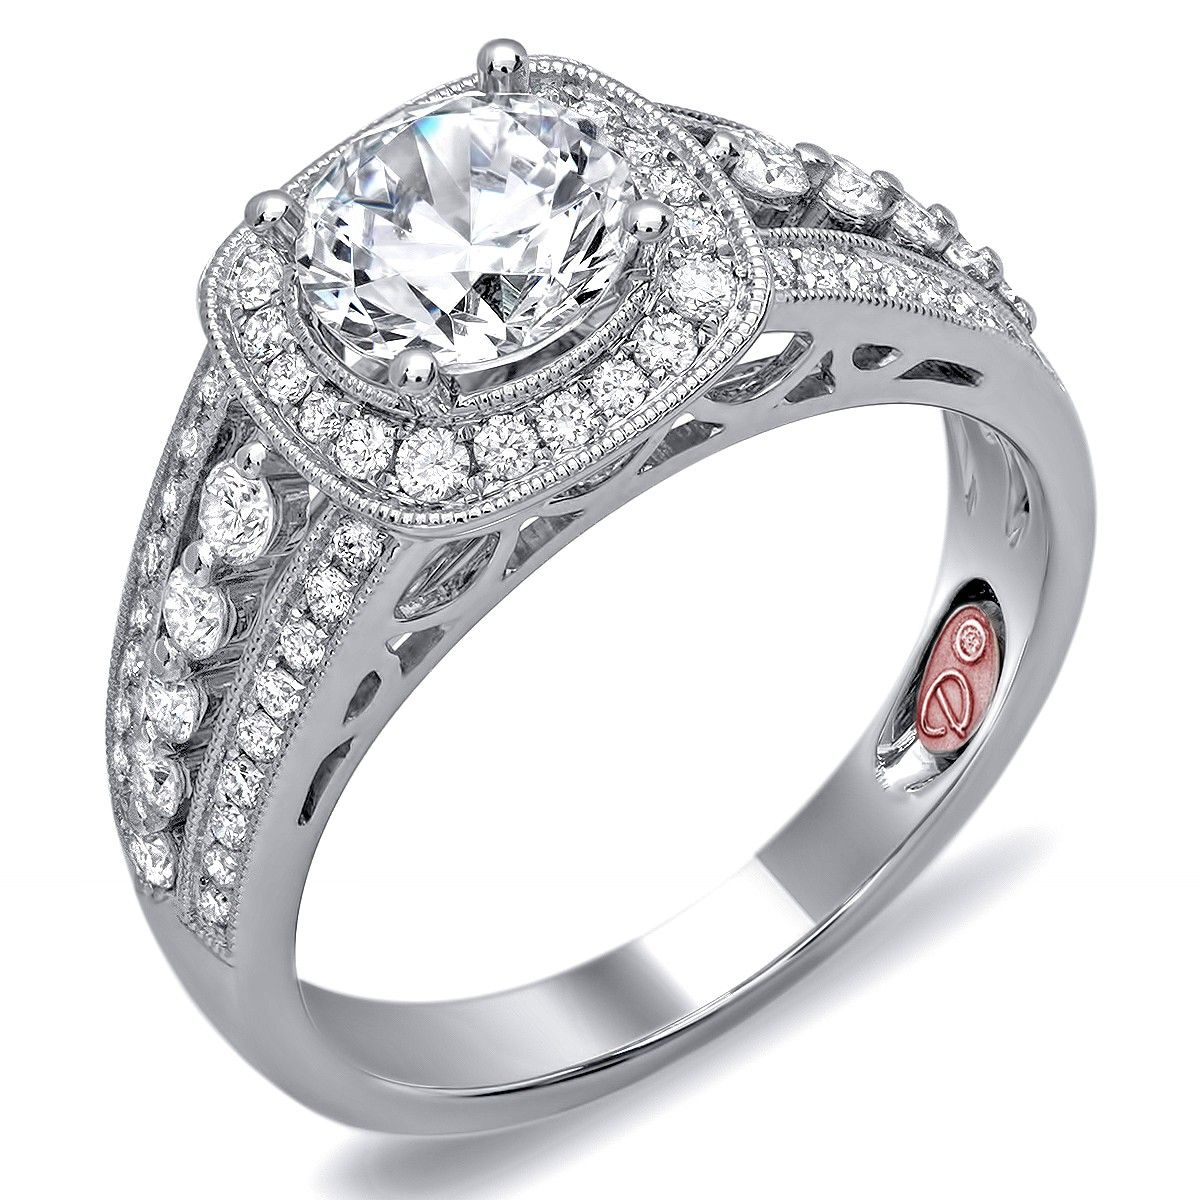 18k white gold semimount with 0.55 carat total weight